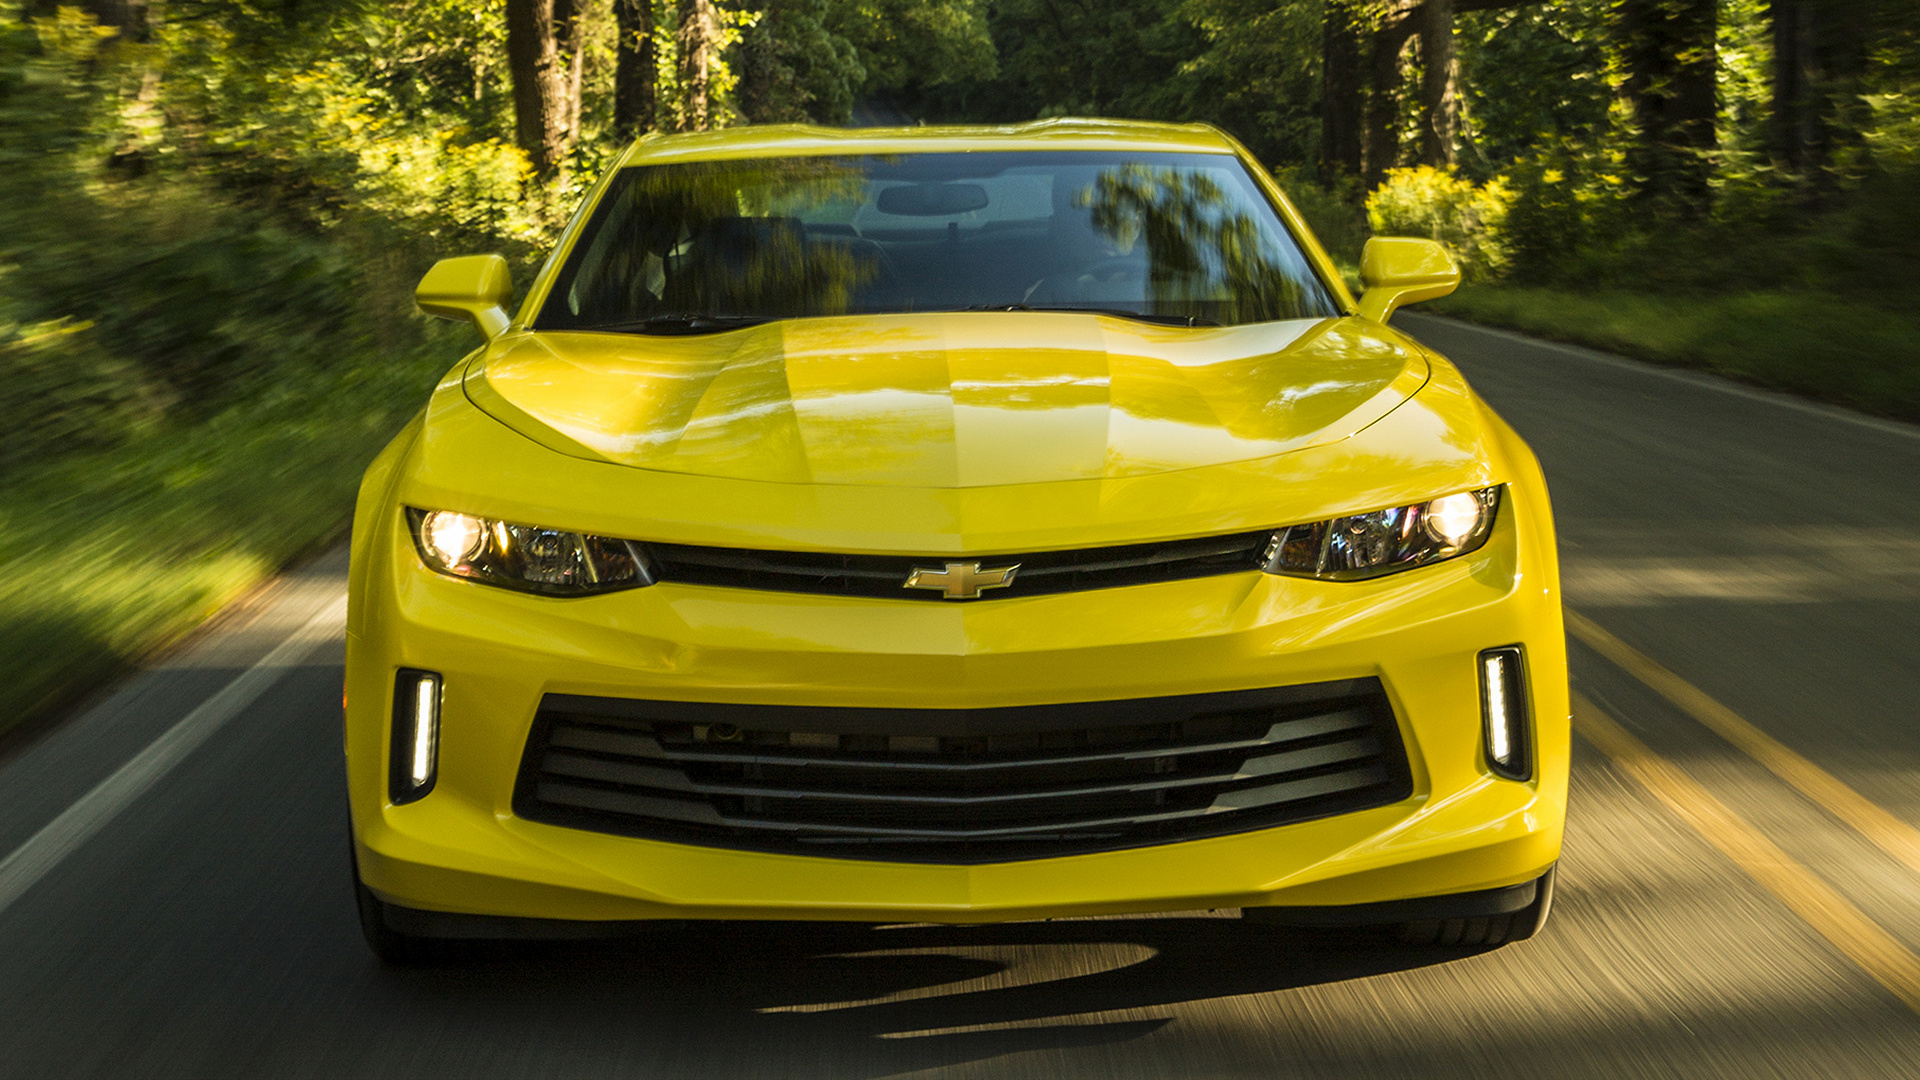 Chevrolet Camaro 2016 Wallpapers and HD Images 1920x1080